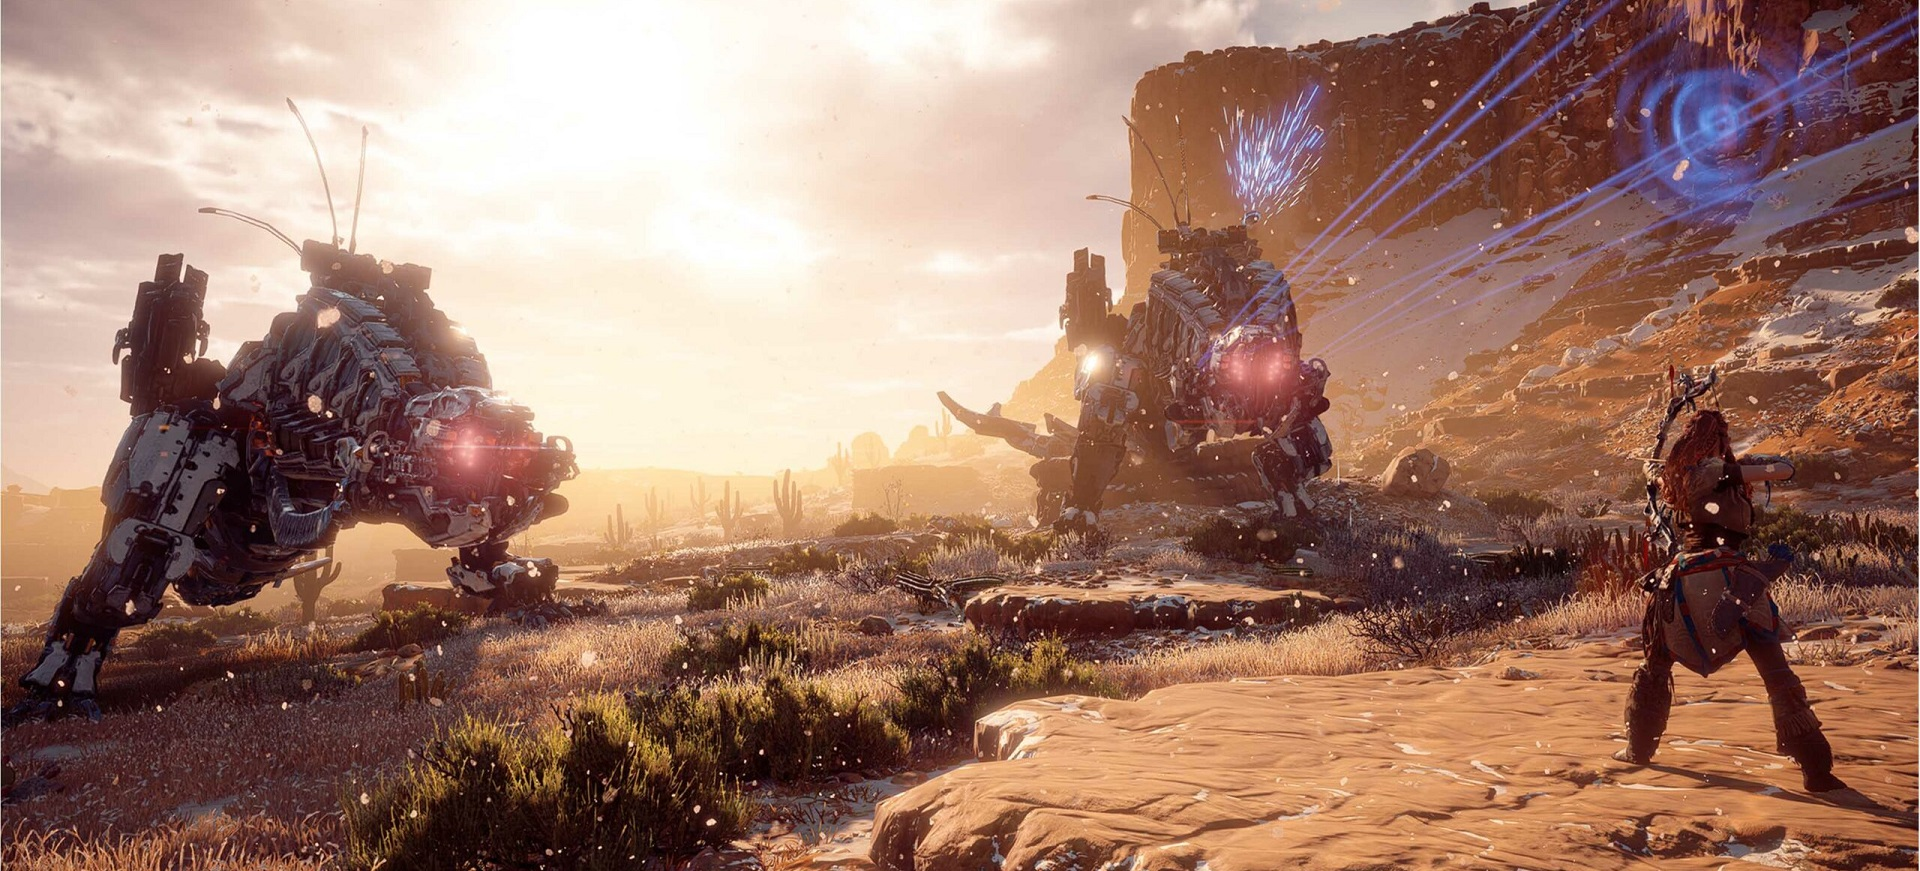 Horizon Zero Dawn is a must-play game before Horizon Forbidden West launches